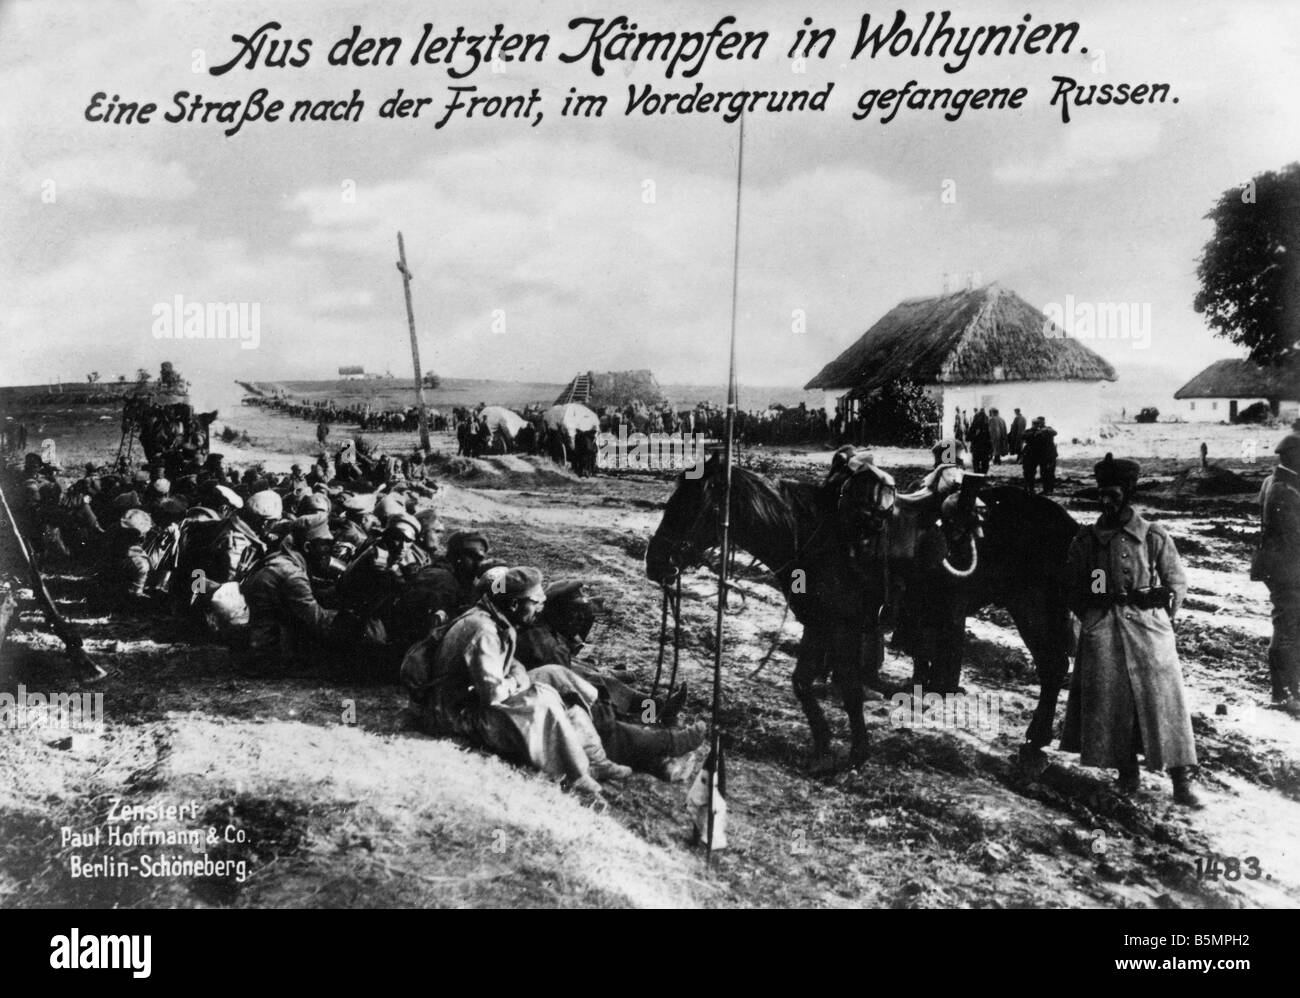 9 1915 8 0 A1 E East Fr Battle in Wolhynien Photo World War 1 Eastern Front Battle in Wolhynien Sout east Poland - Stock Image